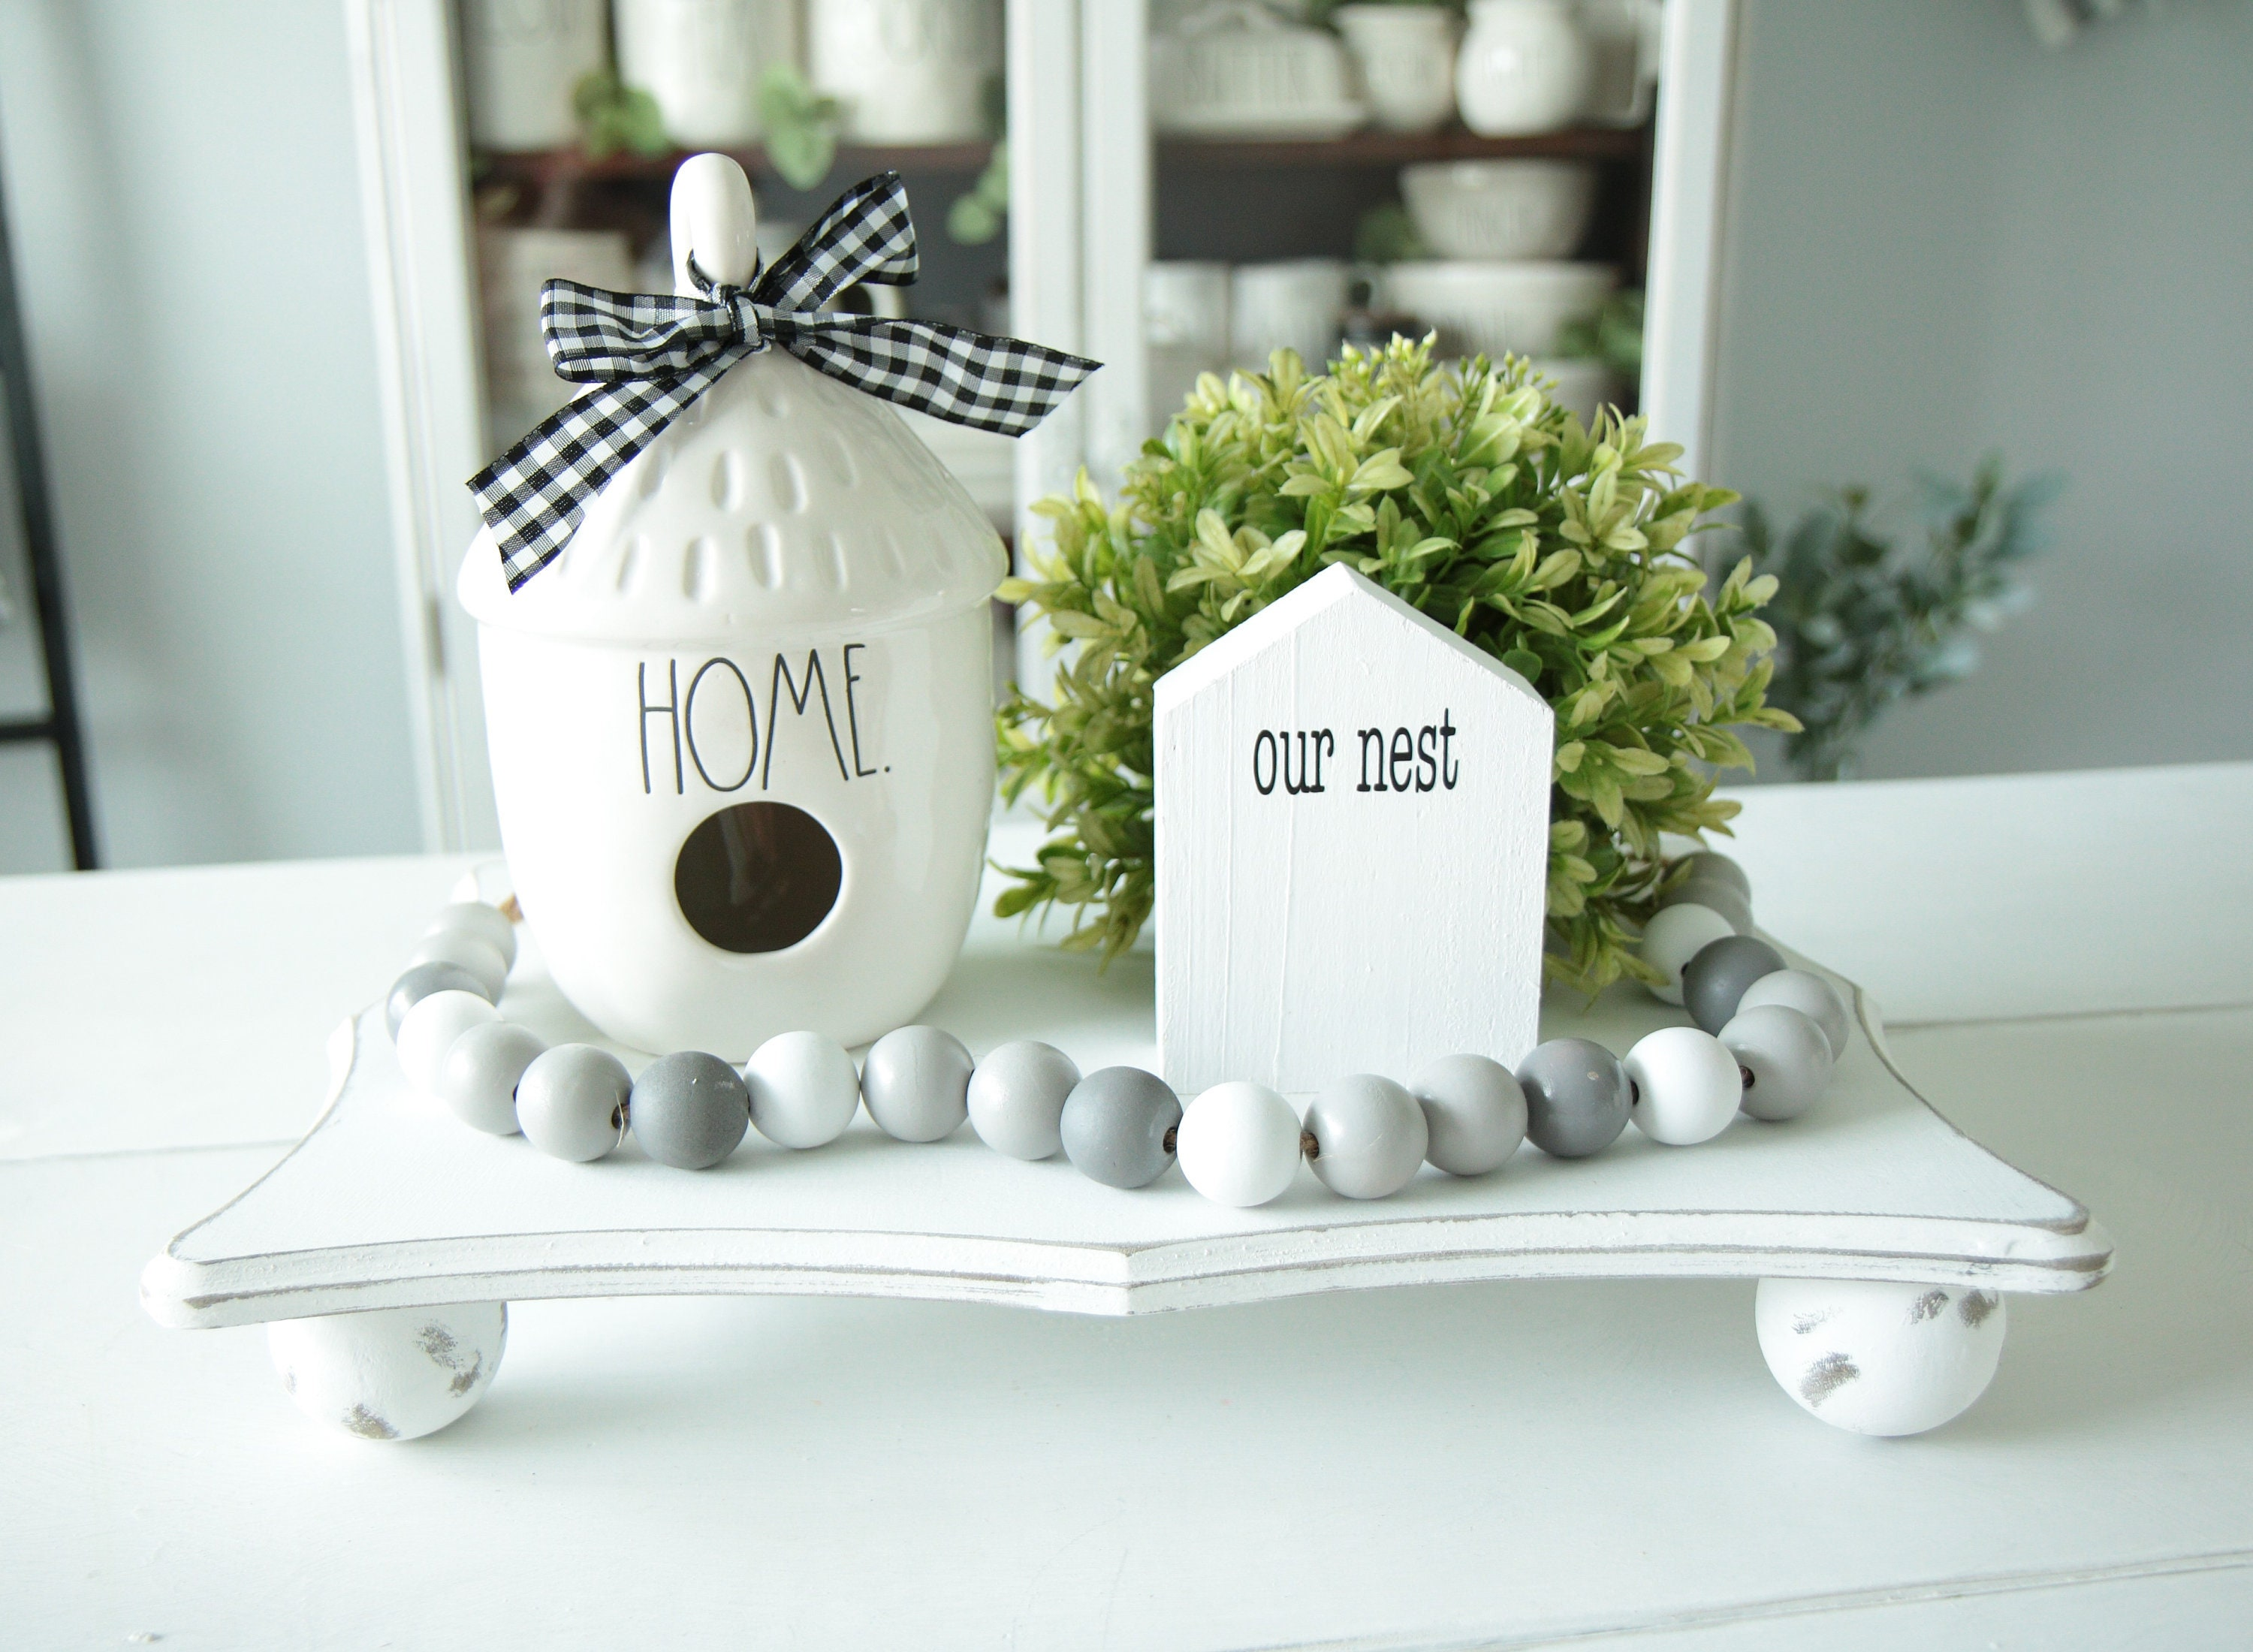 Mini Wood House Rae Dunn Inspired Patterned Wood House Farmhouse Decor Tiered Tray Decor